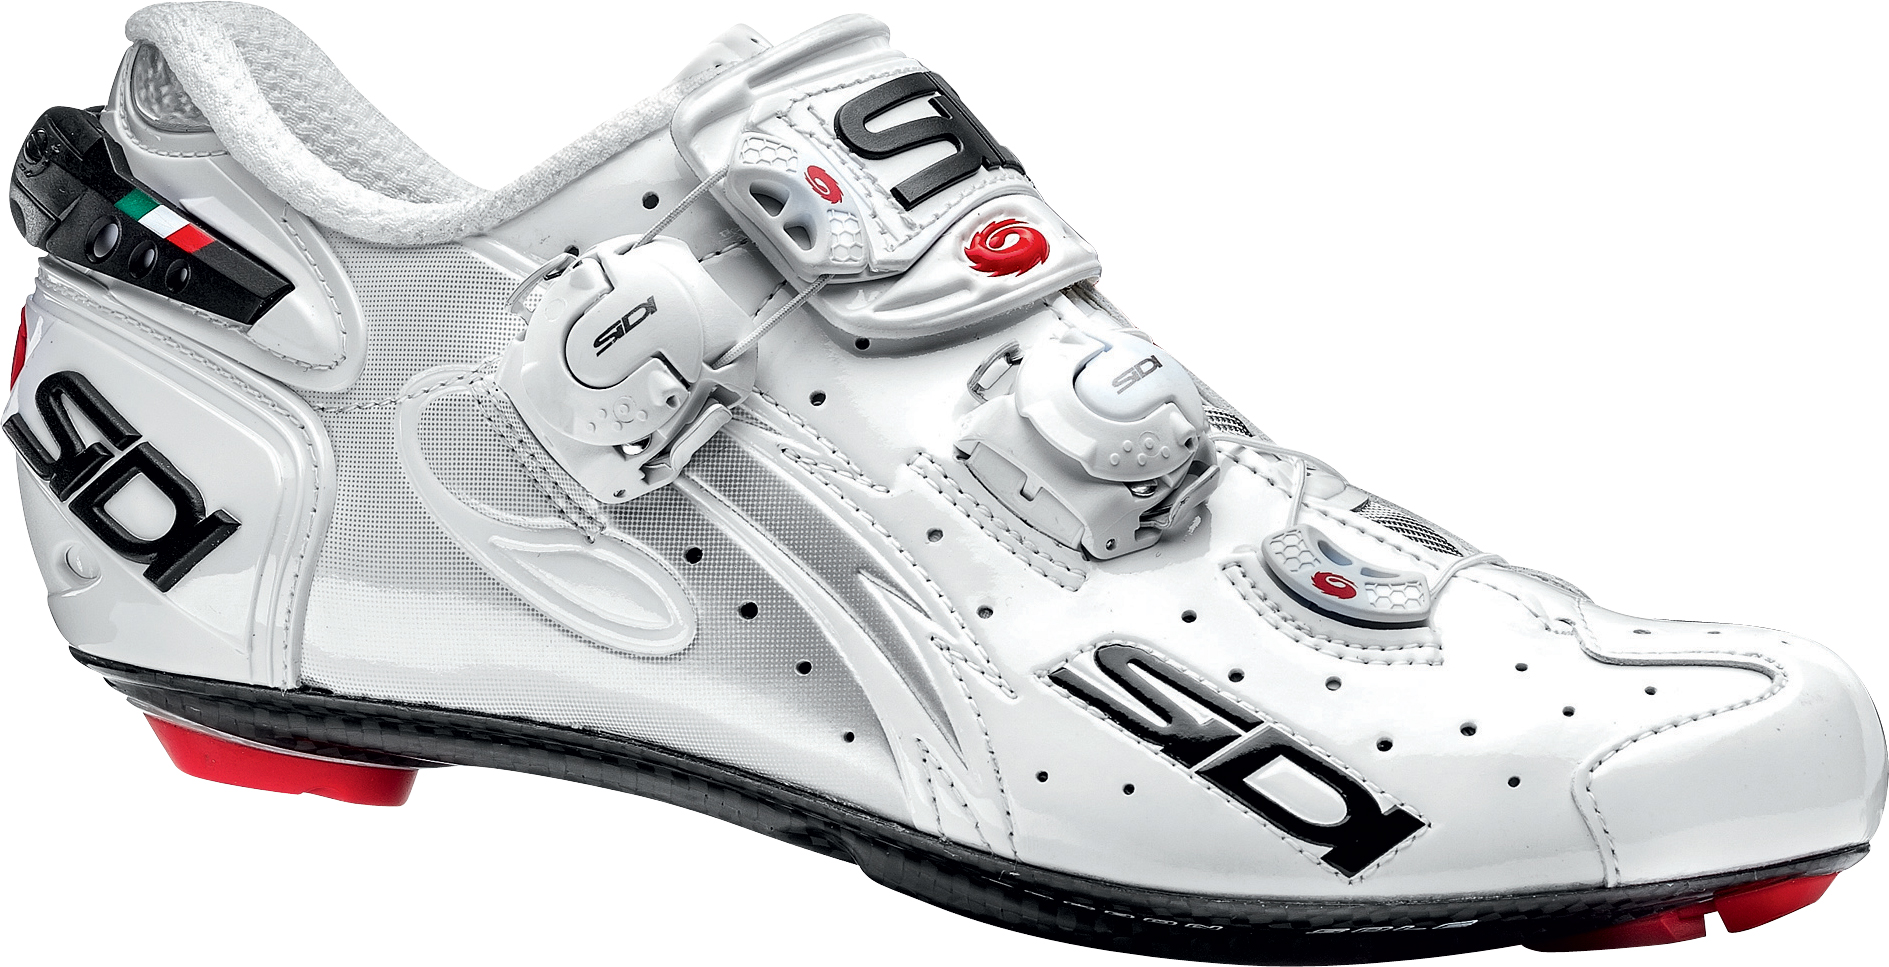 Sidi Ergo 3 Review | Sidi Wire Carbon Vernice | Sidi Vernice Cycling Shoes